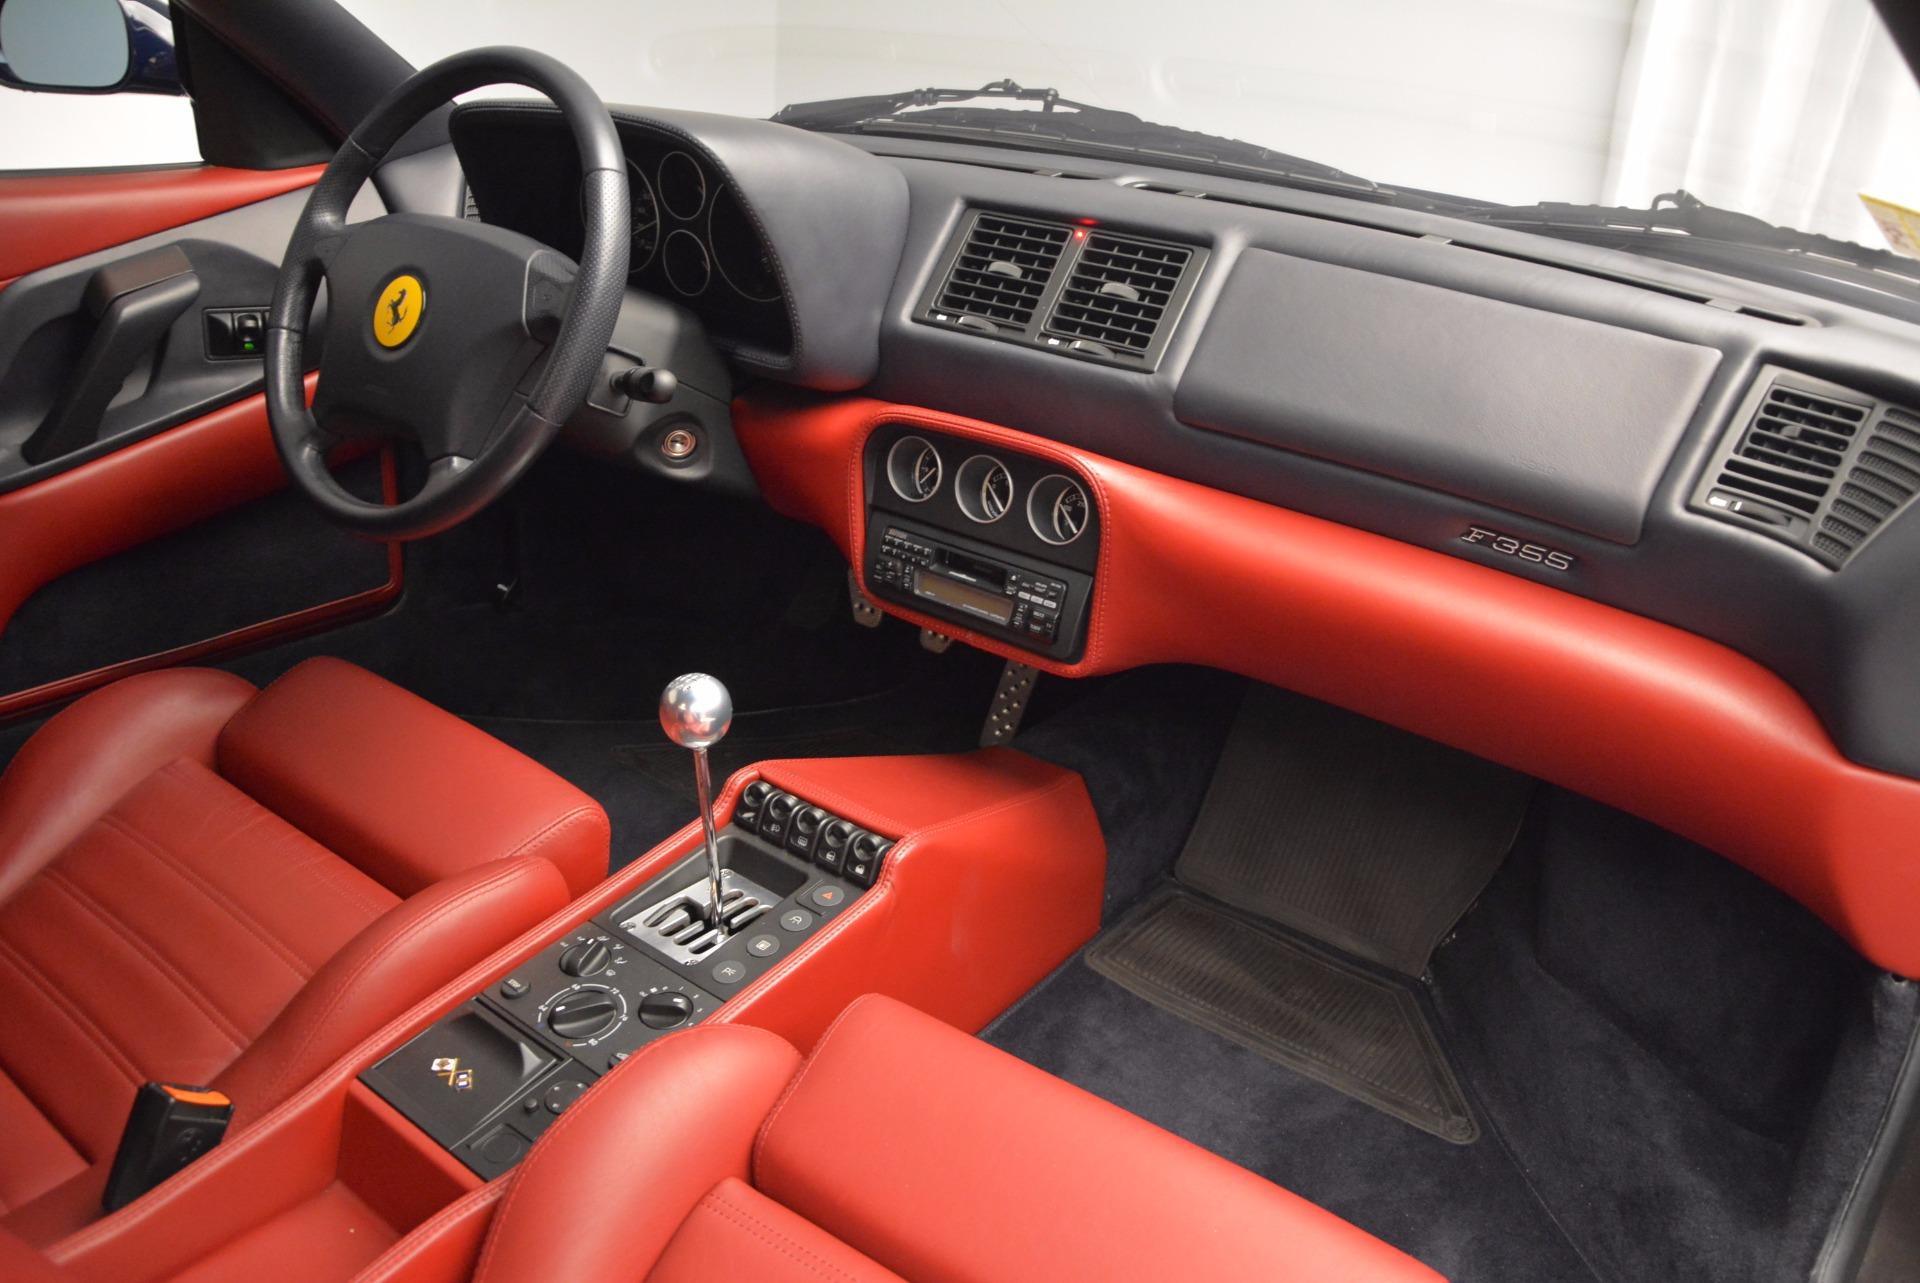 Used 1999 Ferrari 355 Berlinetta For Sale In Westport, CT 855_p18